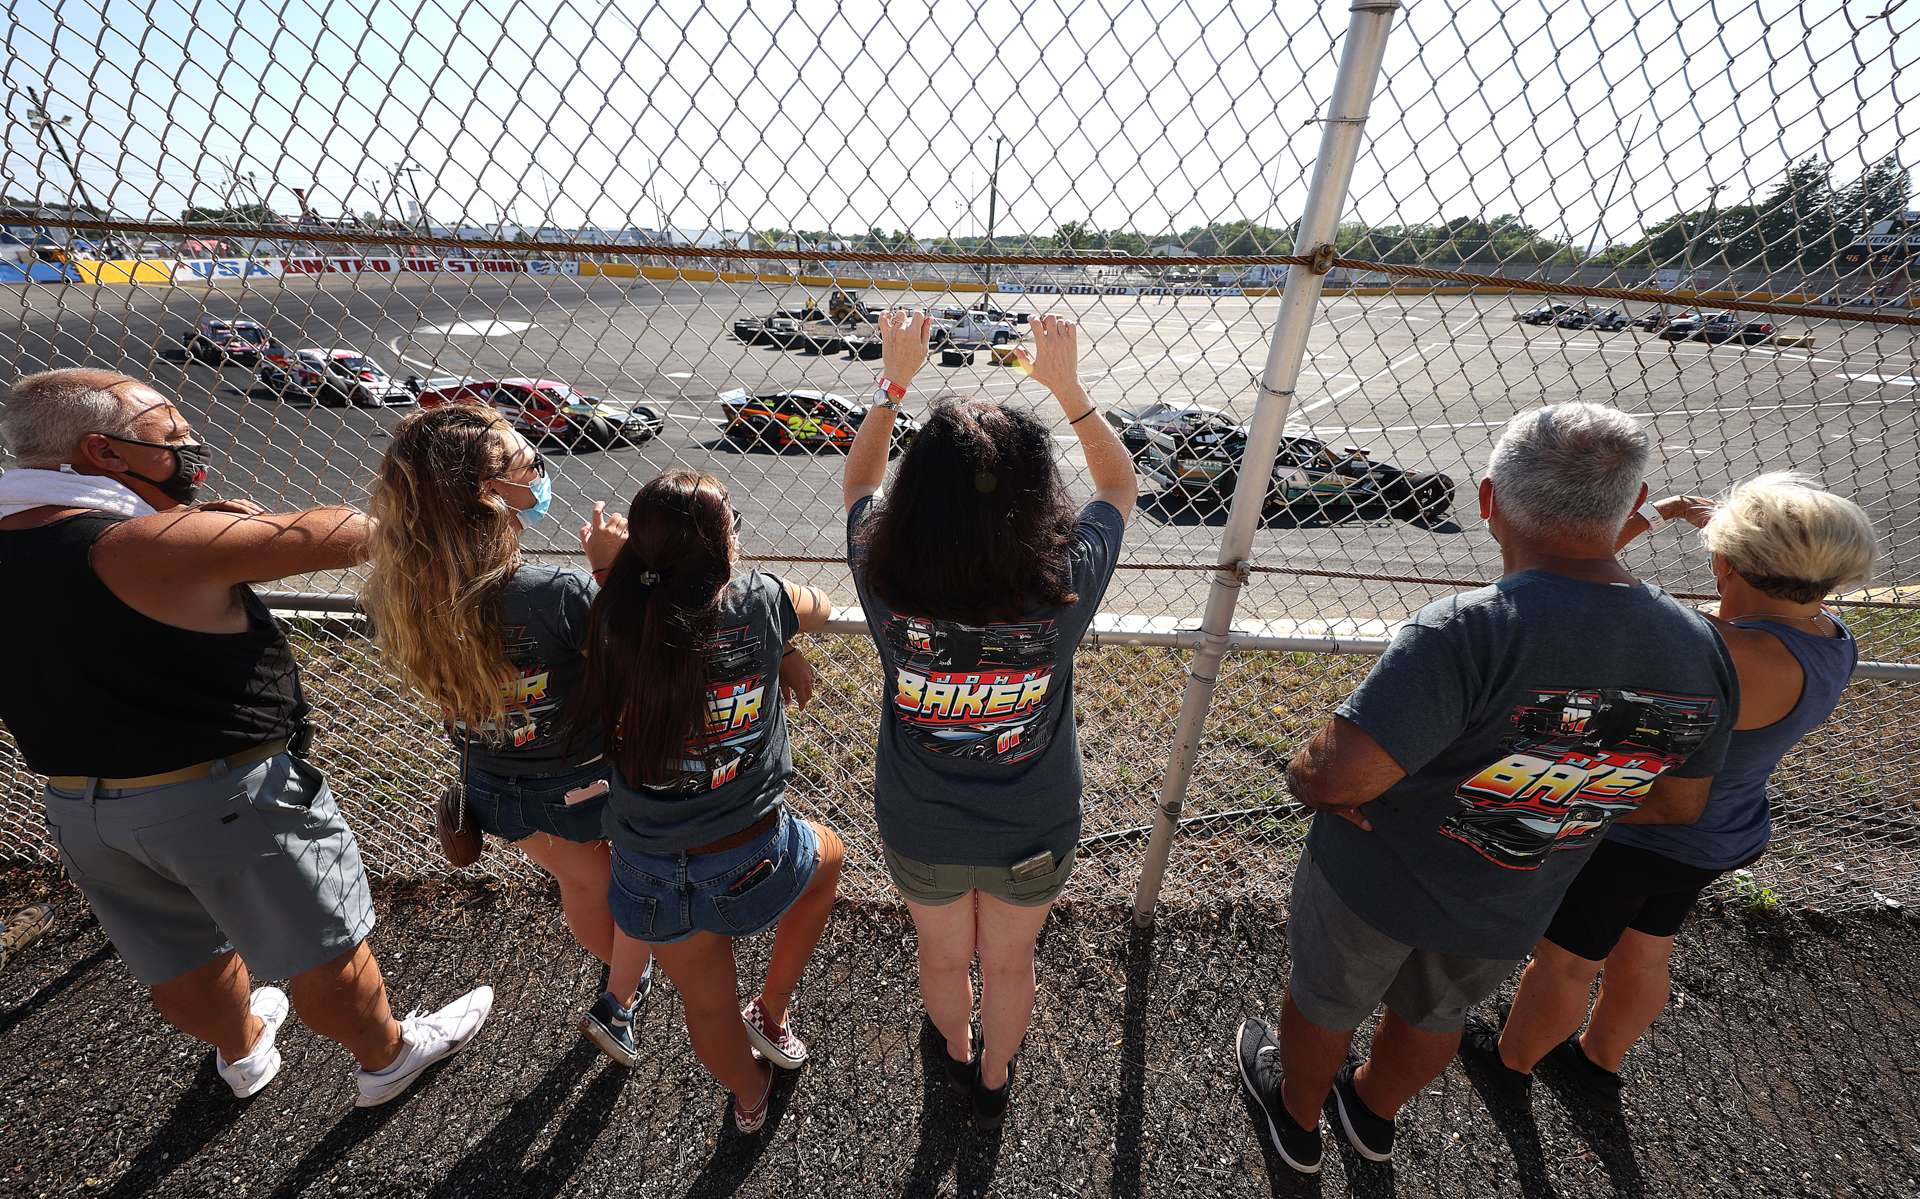 Fans watch cars racing around the track during NASCAR Advance Auto Series Opening Night at Riverhead Raceway on August 01, 2020 in Riverhead, New York.  The race track had been closed due to the coronavirus COVID-19 pandemic.  More than 4,585,258 people in the United States alone have been infected with the coronavirus and at least 154,000 have died.